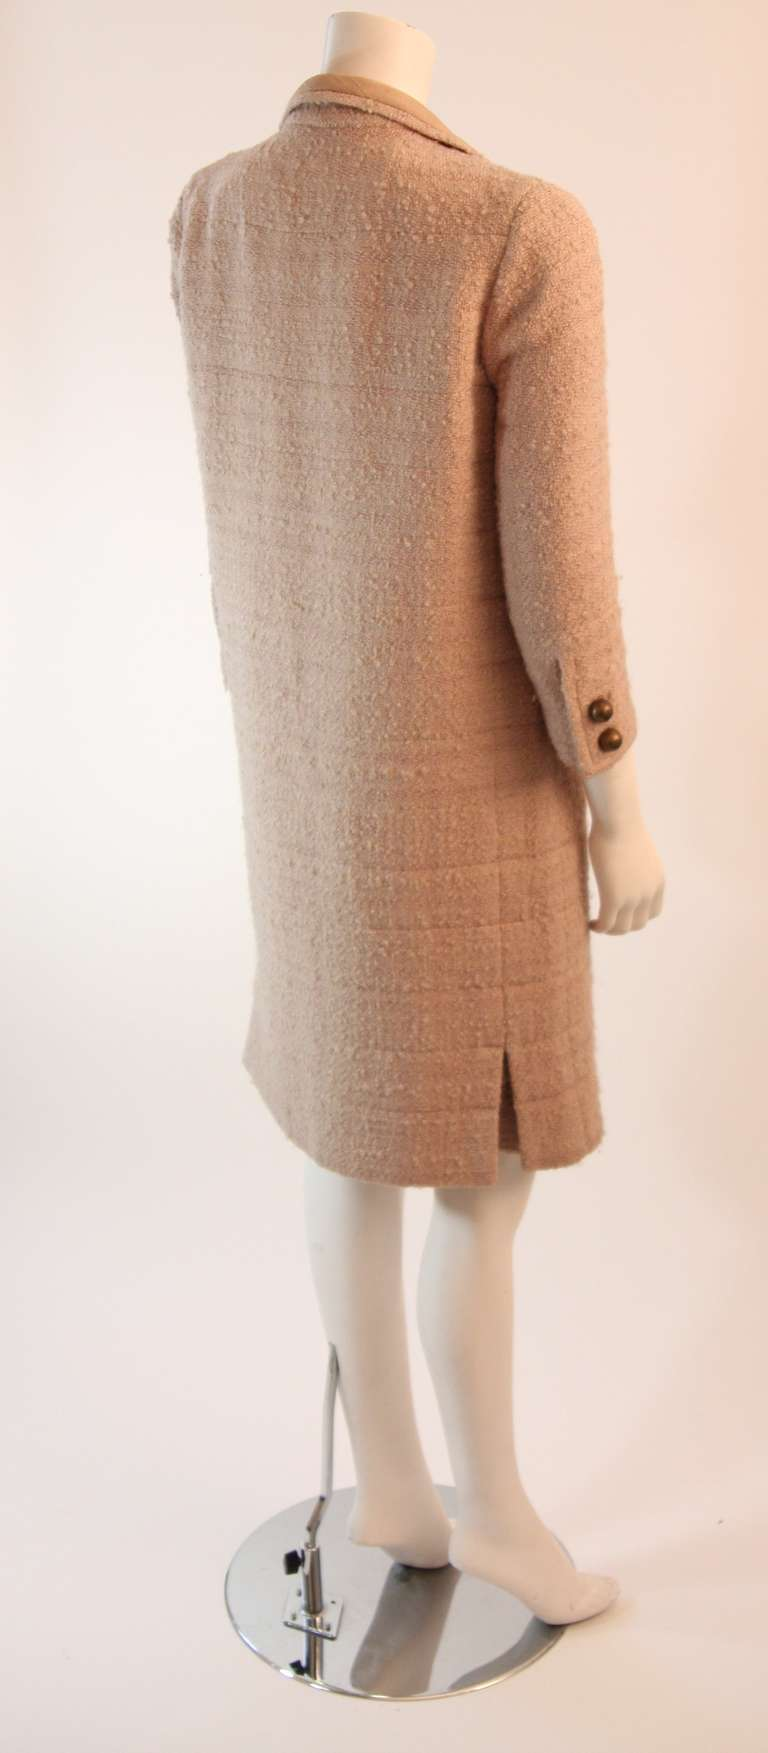 1960's Attributed to Chanel Couture Cream Boucle 3 Piece Tweed Suit 6